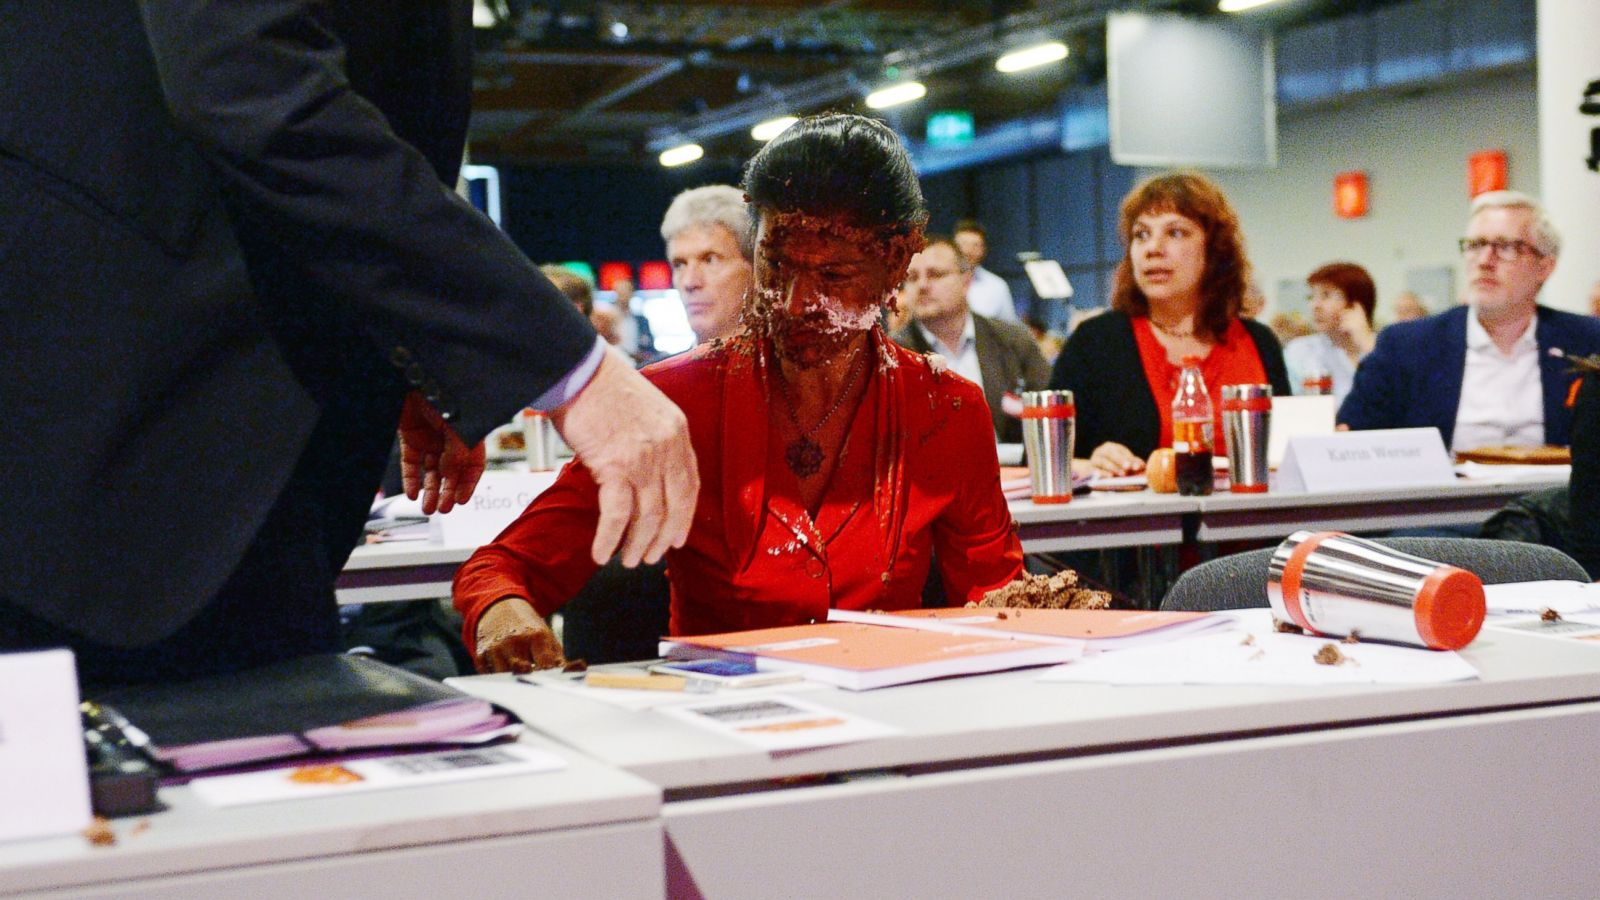 German Opposition Leader Attacked With Cake Over Migrants